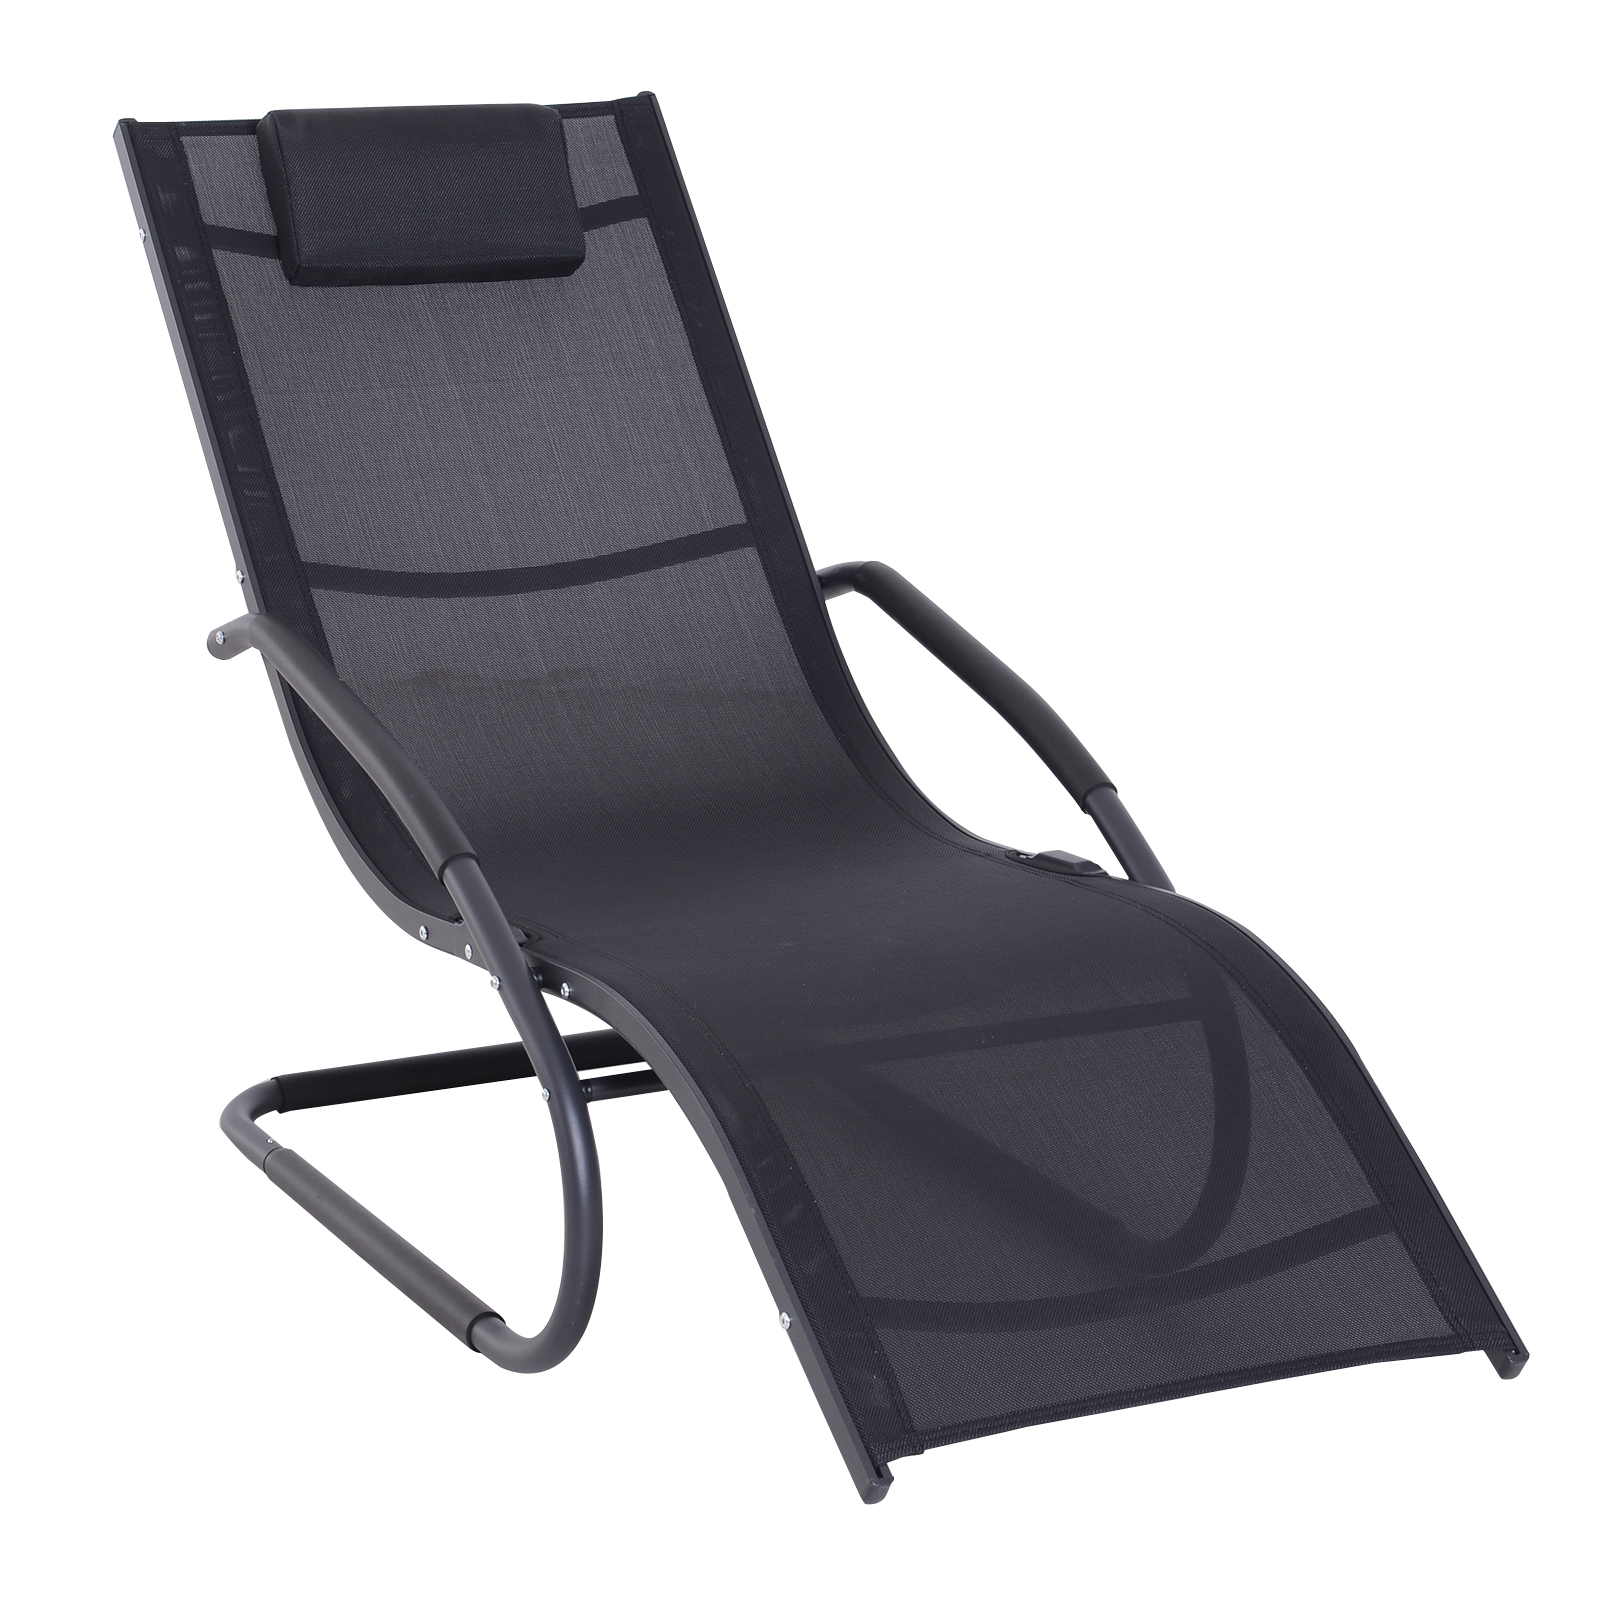 Outsunny Chair Lounger Garden Design Ergonomic Headrest Removable Fabric Outdoor Aluminum Frame, Textilene